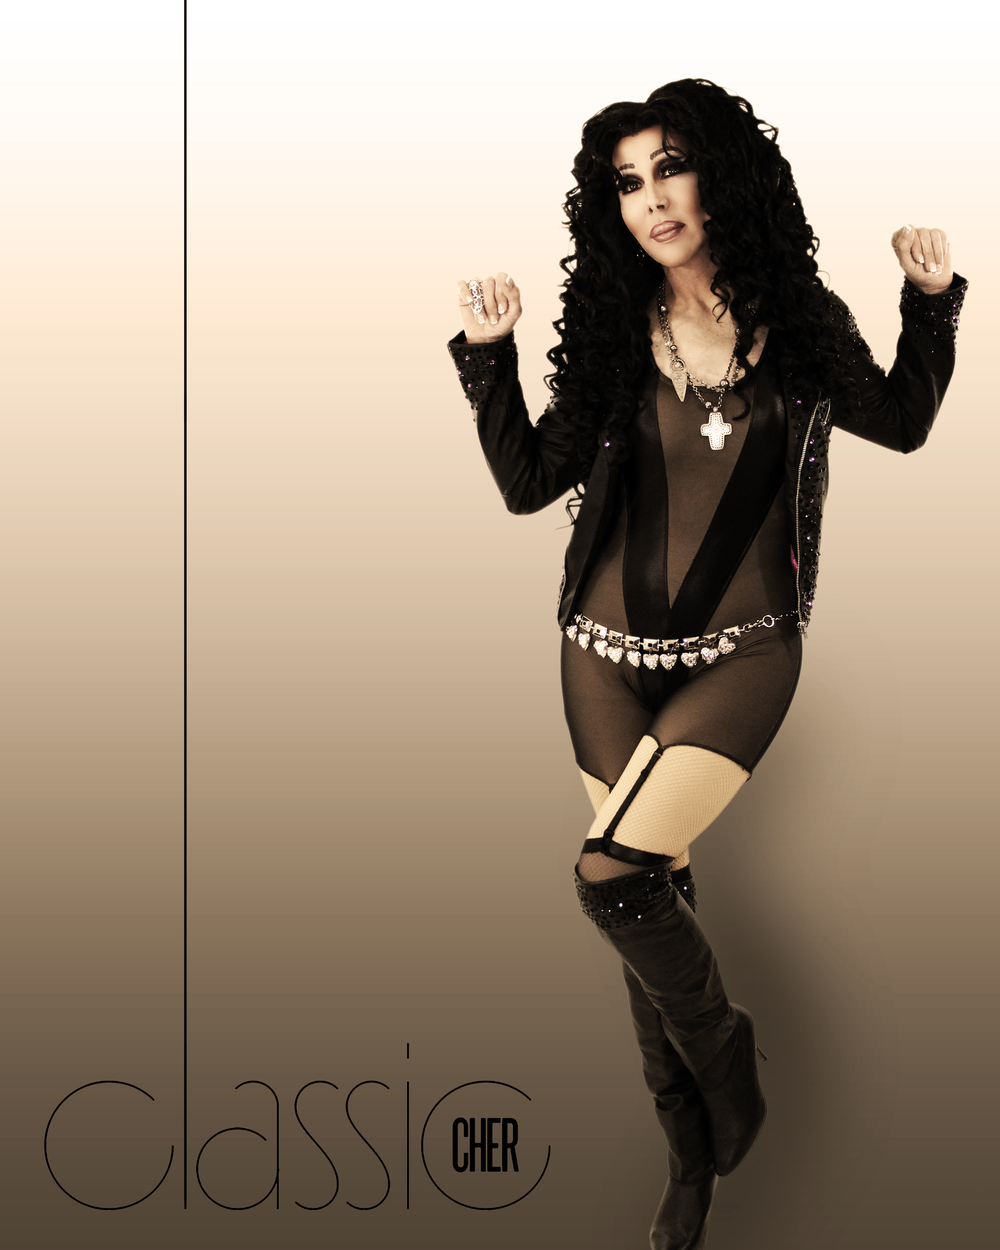 Chad Michaels  - A frequent guest on RuPaul's Drag Race and winner of the All Stars season, Chad Michaels has also made guest appearances on Two Broke Girls and Jane the Virgin.